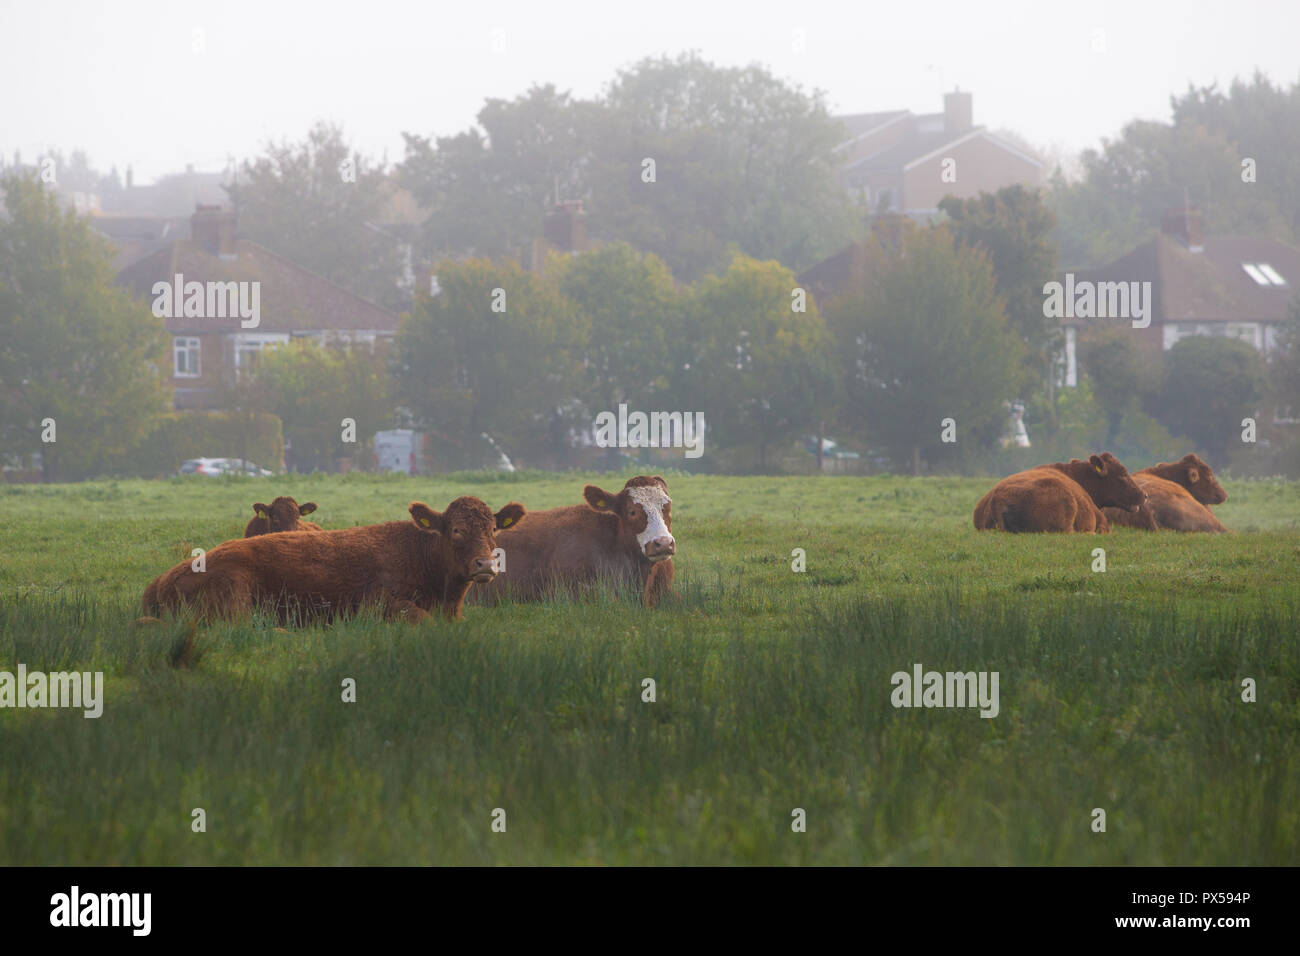 Cows lying down in field on common land amongst suburban housing in Hitchin, Herts, England, UK on misty morning in Autumn Stock Photo